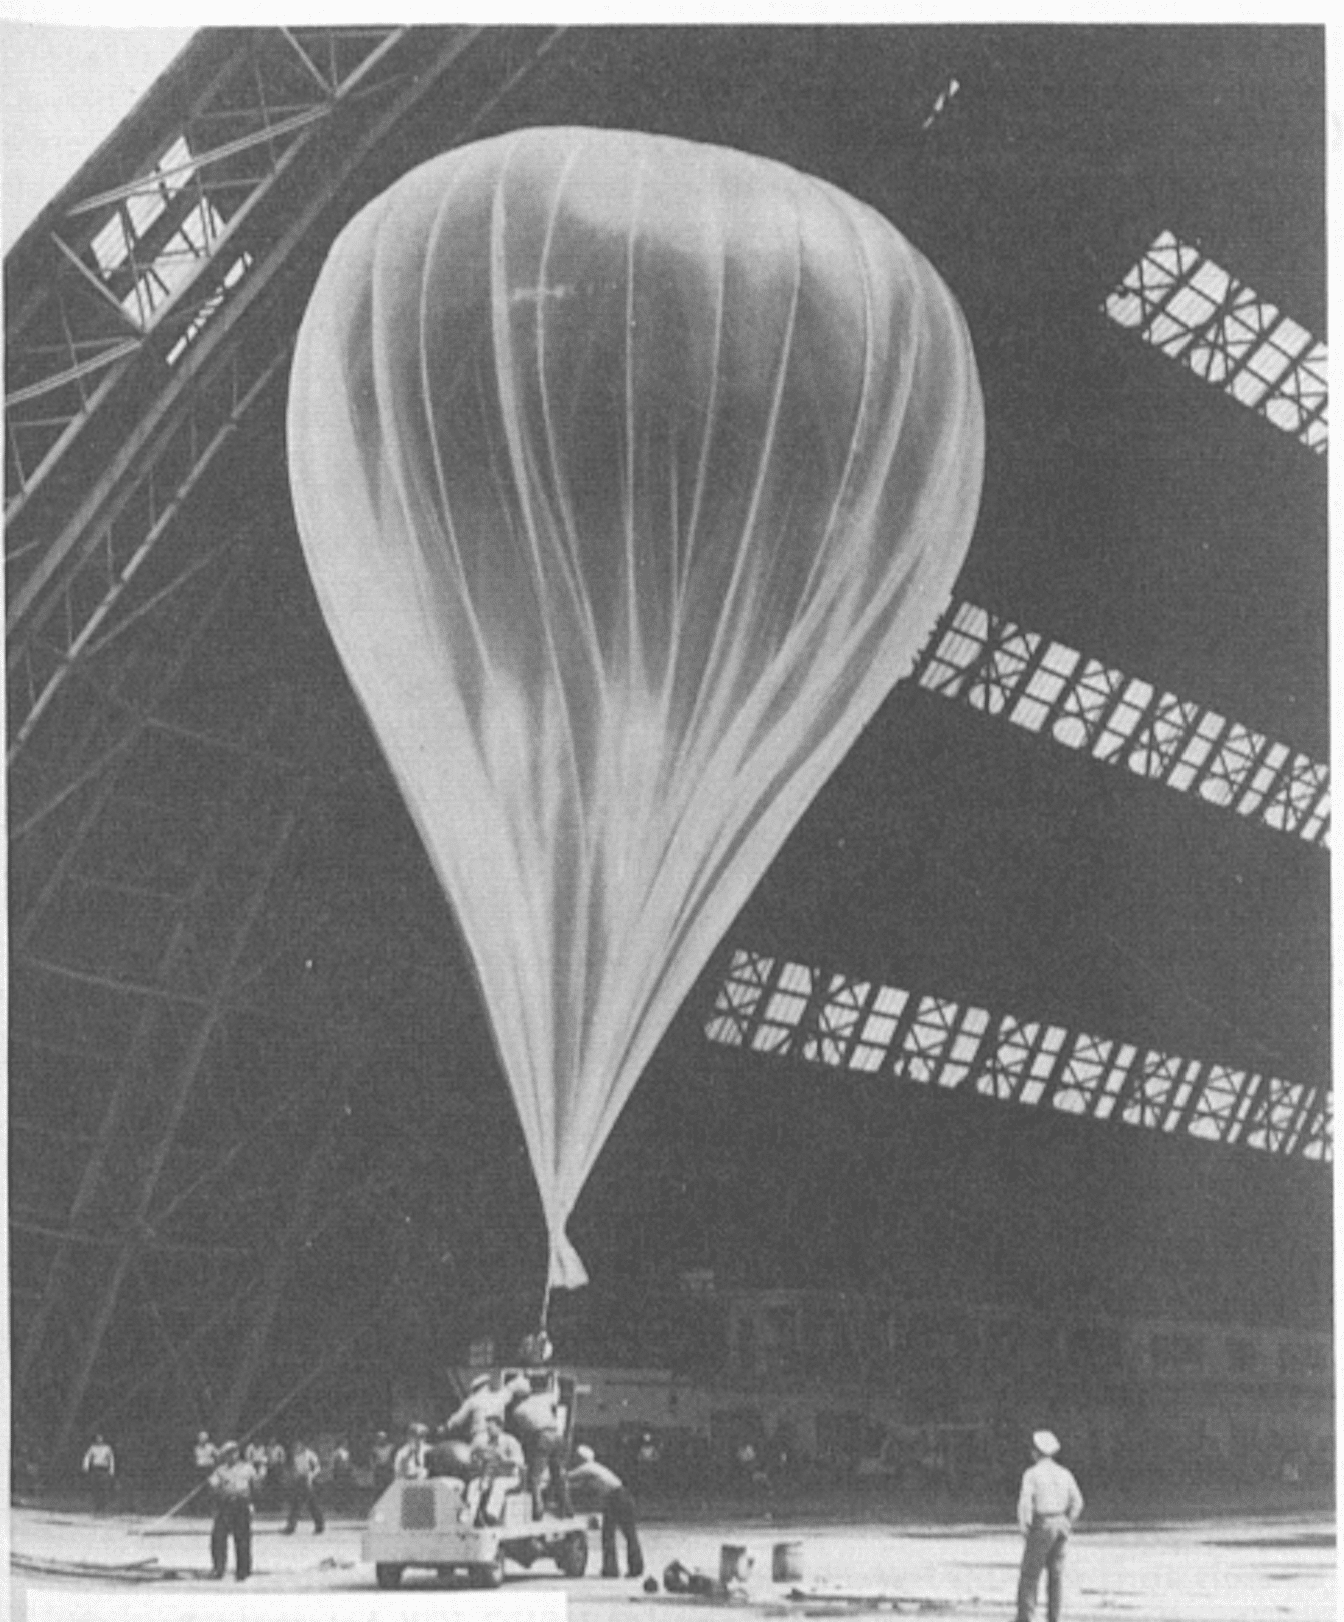 Rosewell incident weather balloon